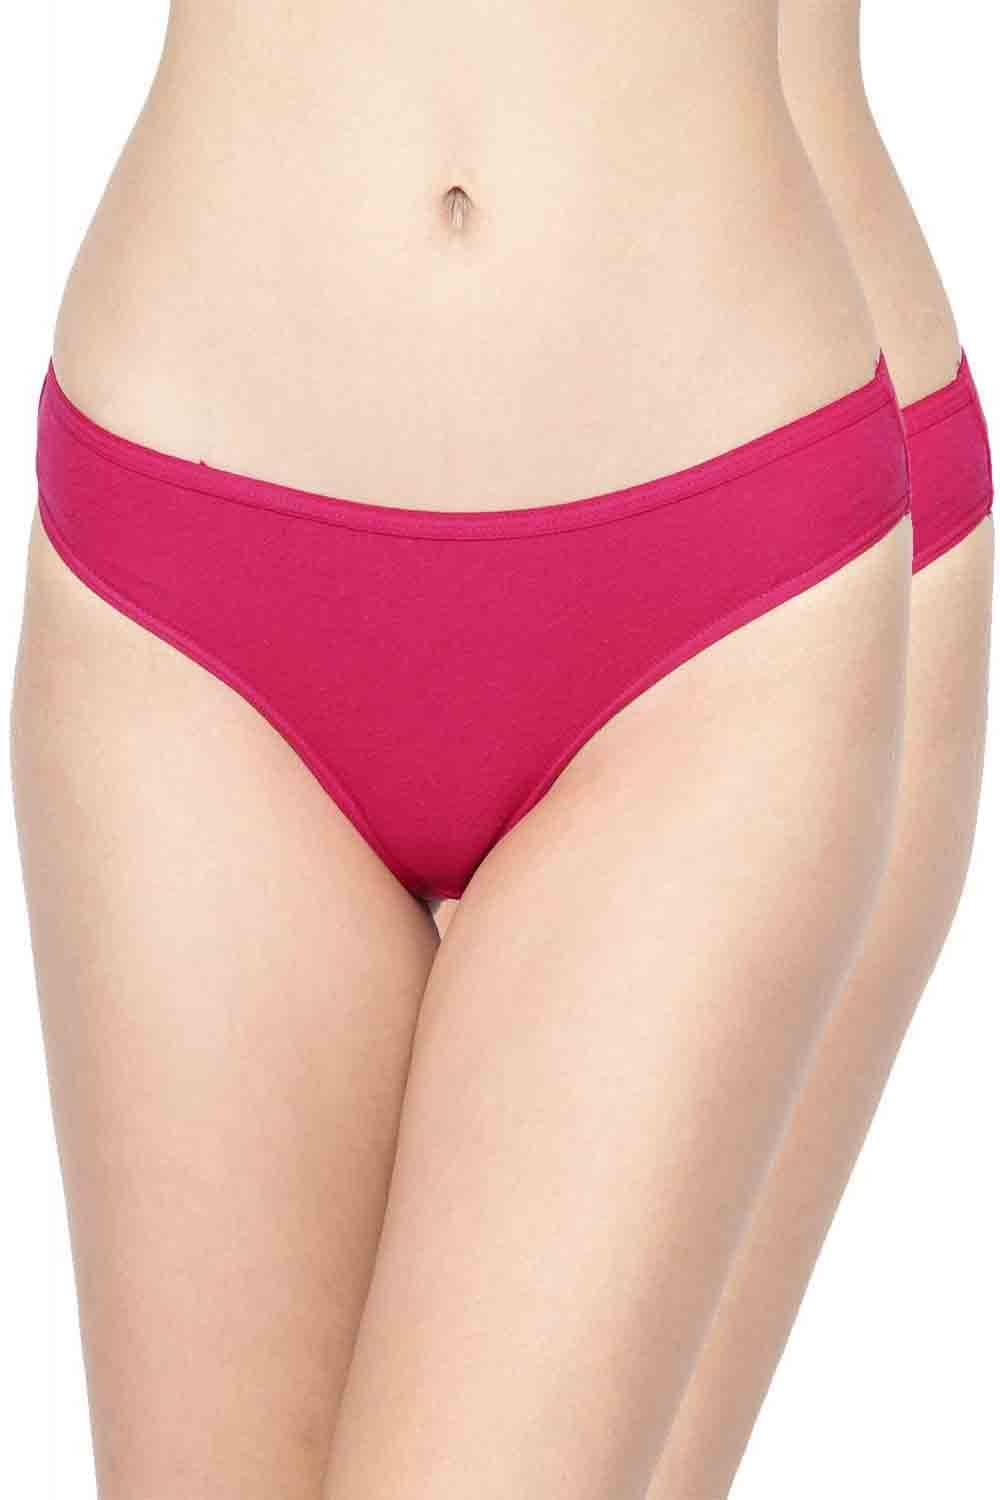 Inner Sense Organic Cotton Antimicrobial Bikini (Pack Of 2)